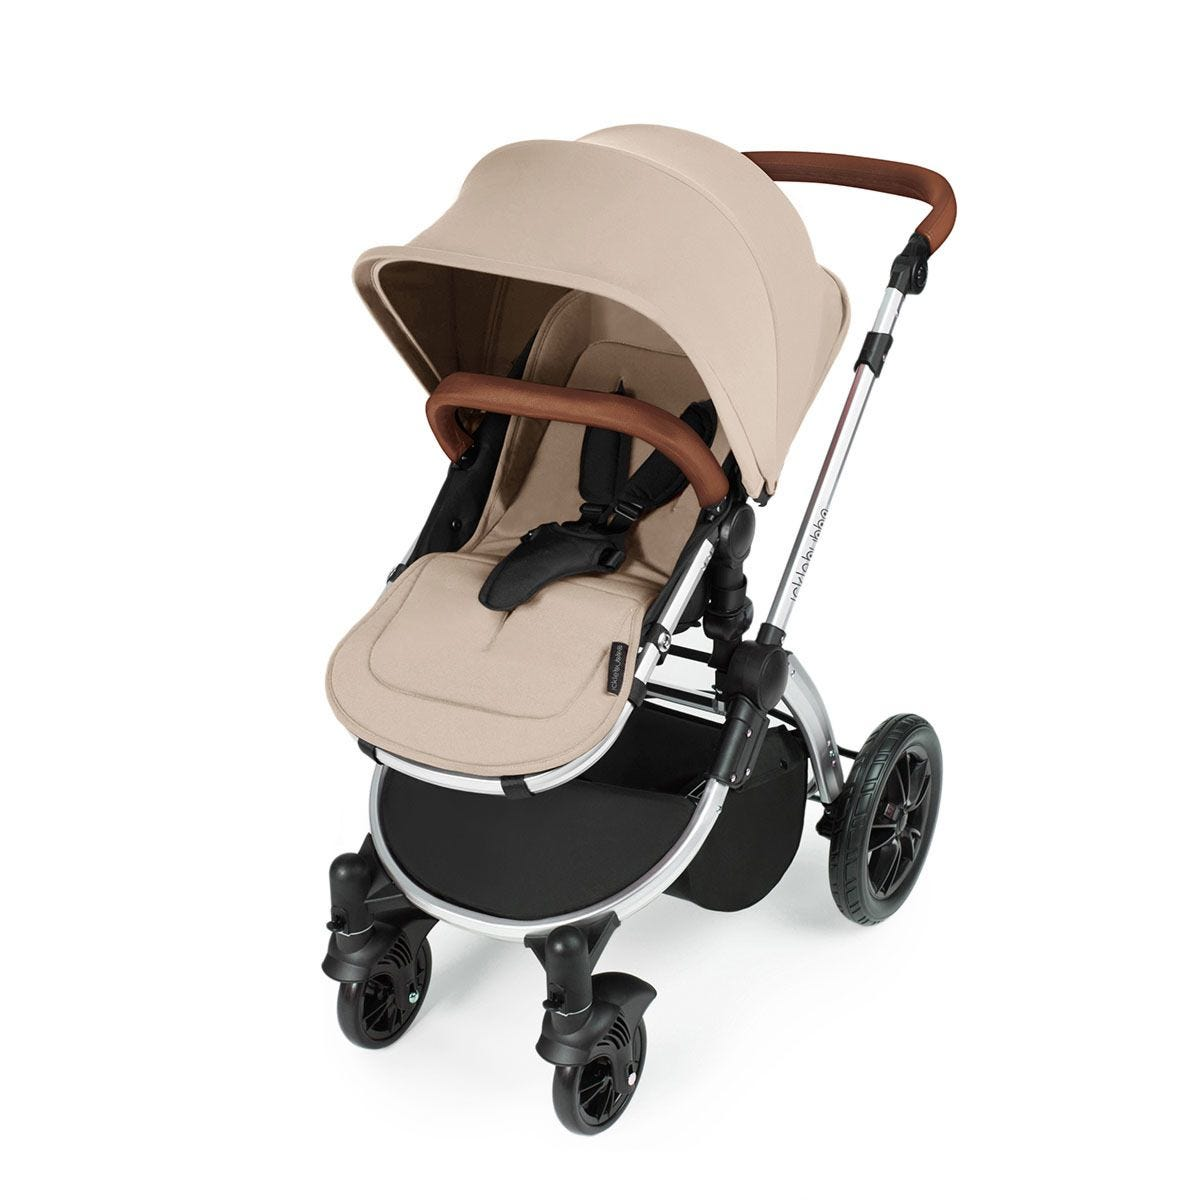 Ickle Bubba Stomp V3 All in One Travel System with Isofix Base - Sand on Silver with Tan Handles